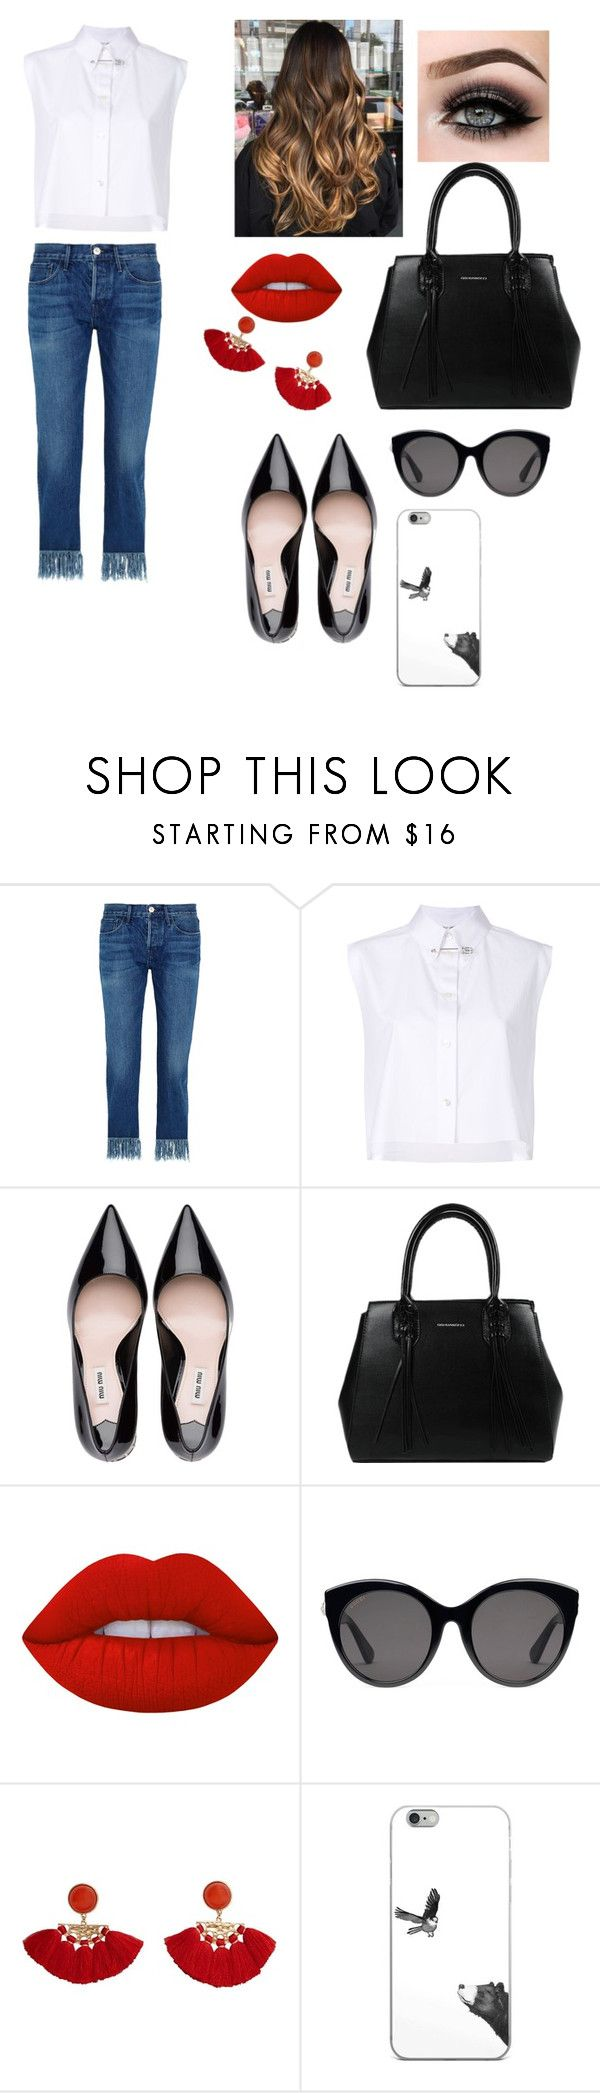 """Funky days"" by emily-bielefeld ❤ liked on Polyvore featuring 3x1, Helmut Lang, ASAP, Lime Crime, Gucci and MANGO"